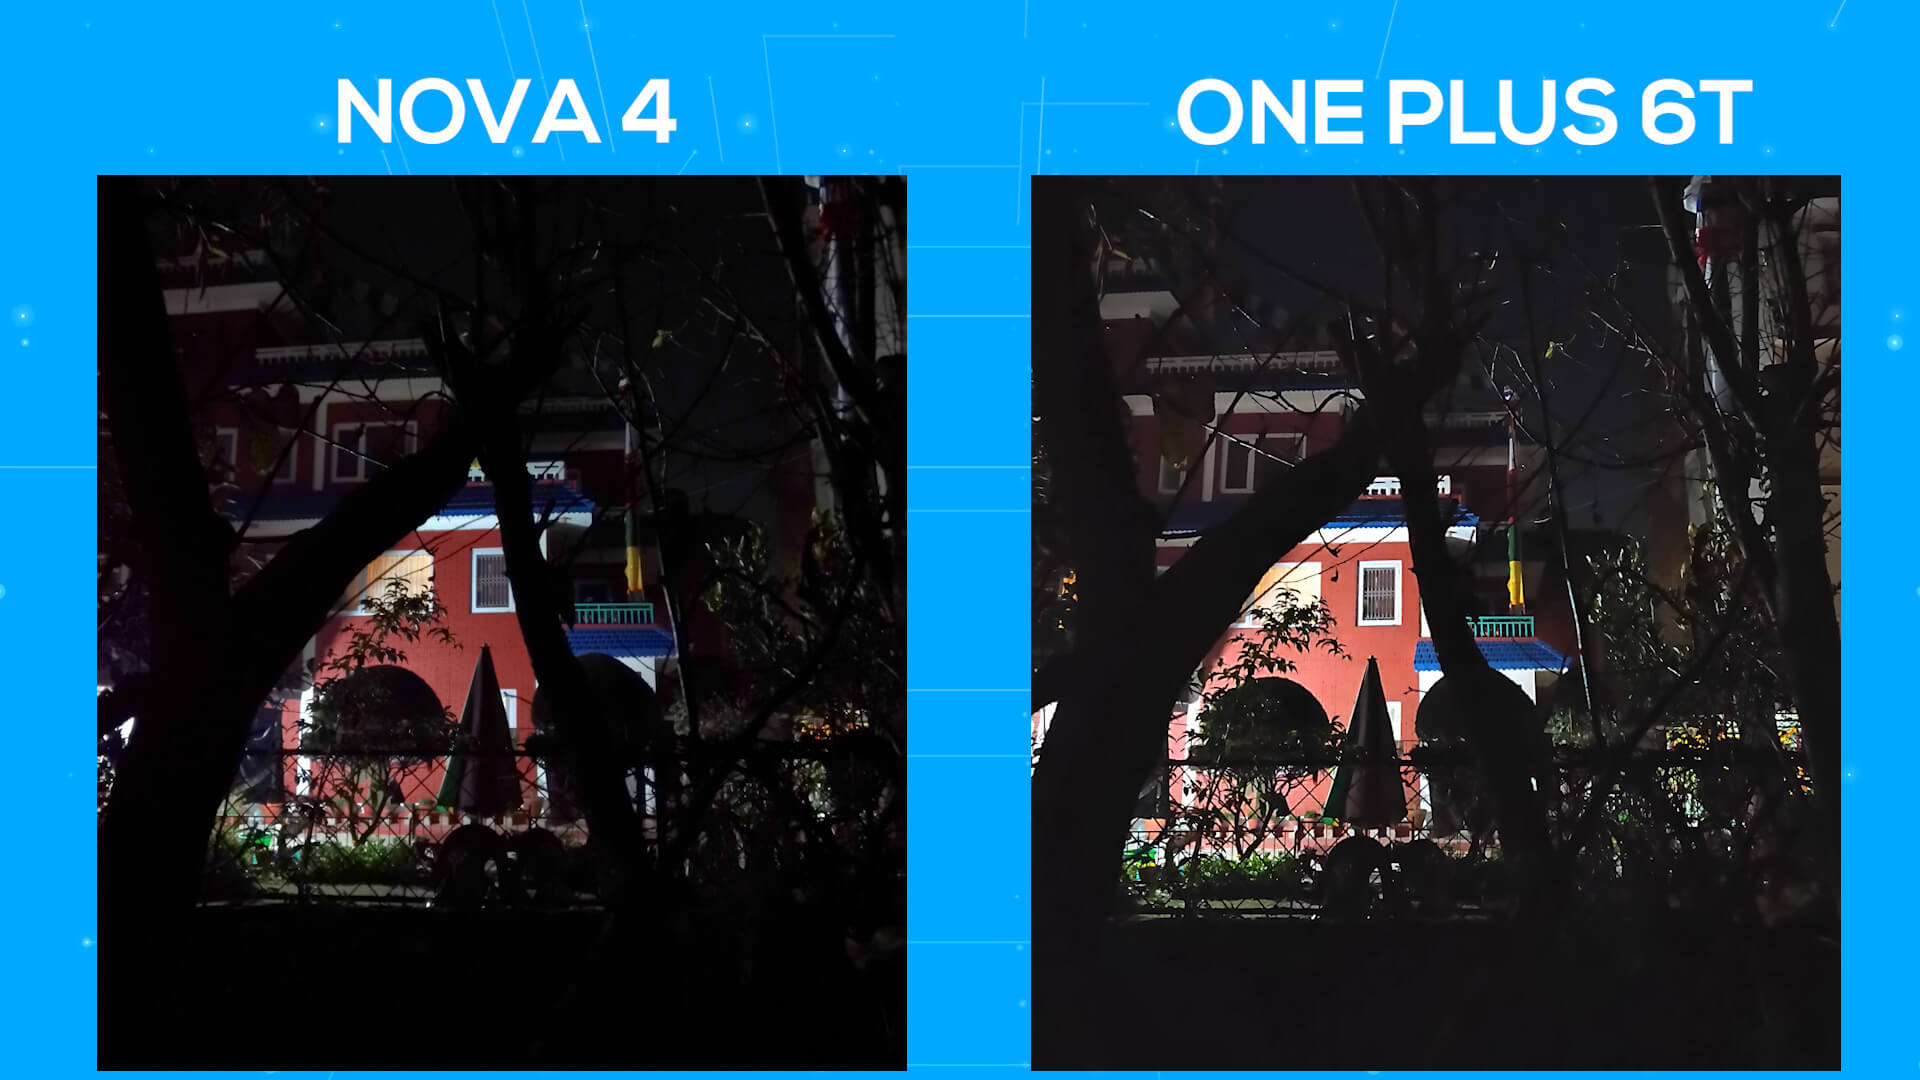 Huawei Nova 4 vs OnePlus 6T camera comparison night mode